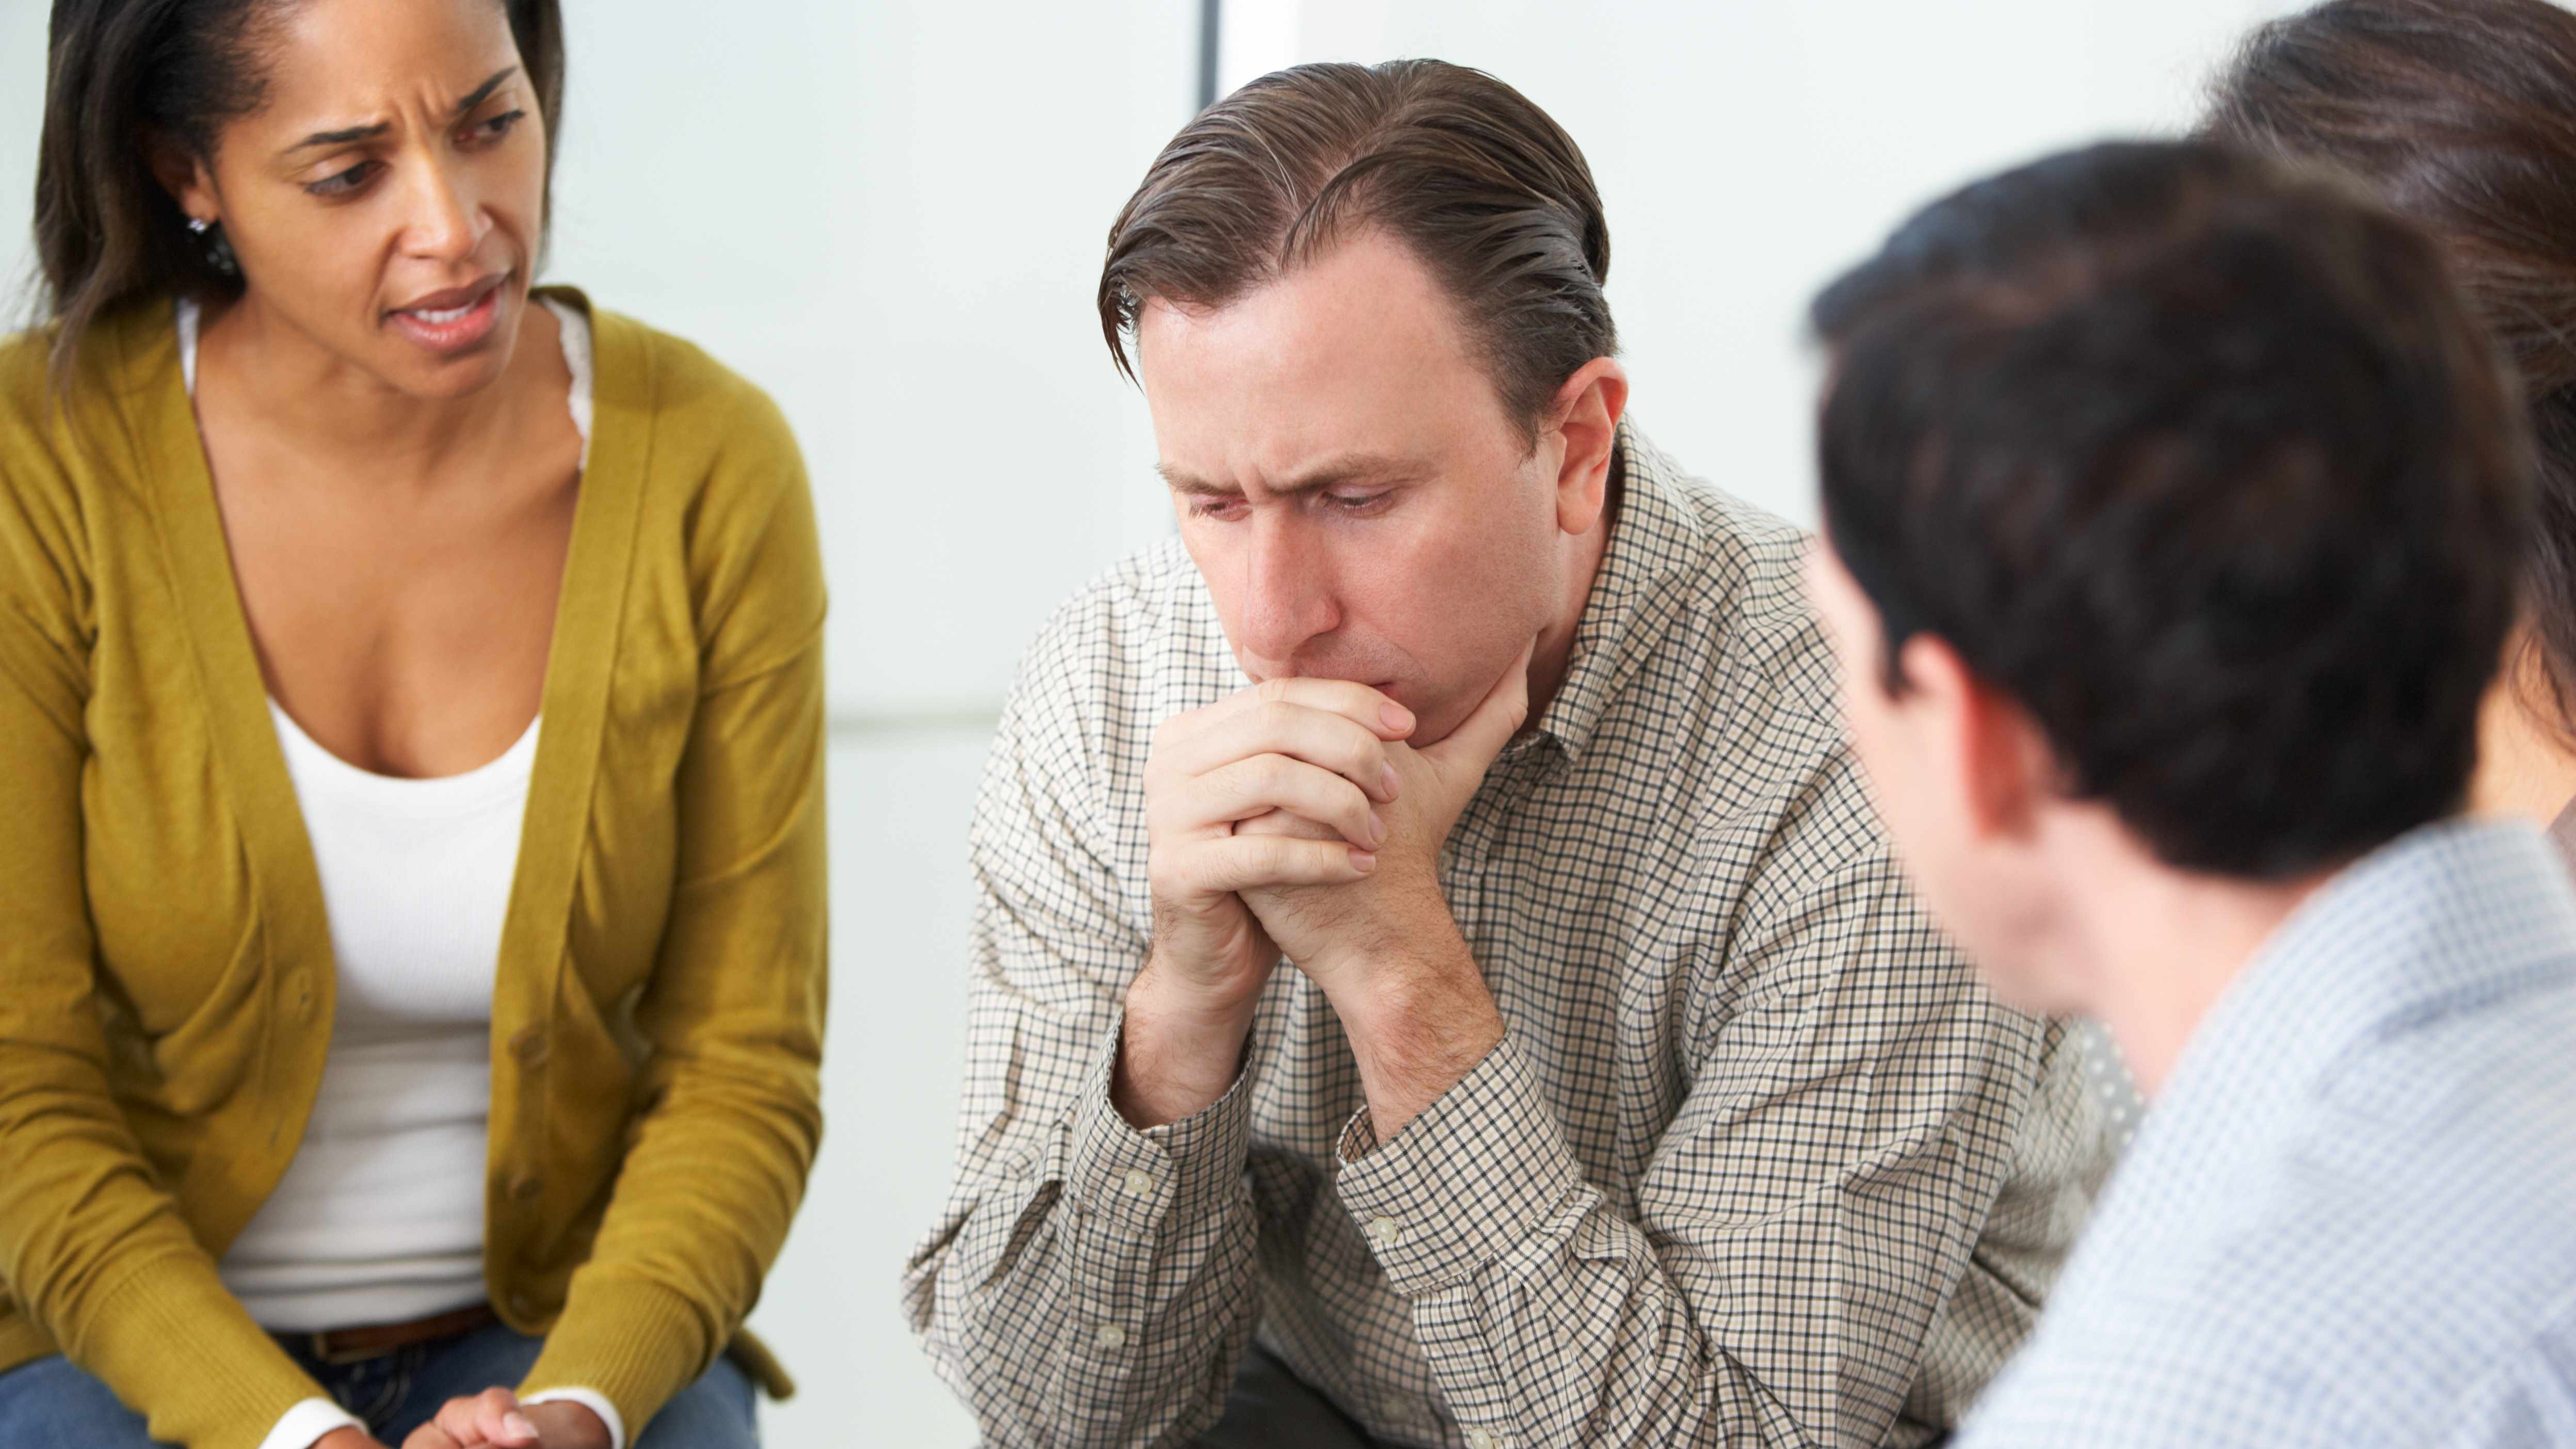 a man in a counselling session looking sad and depressed with concerned people sitting around him